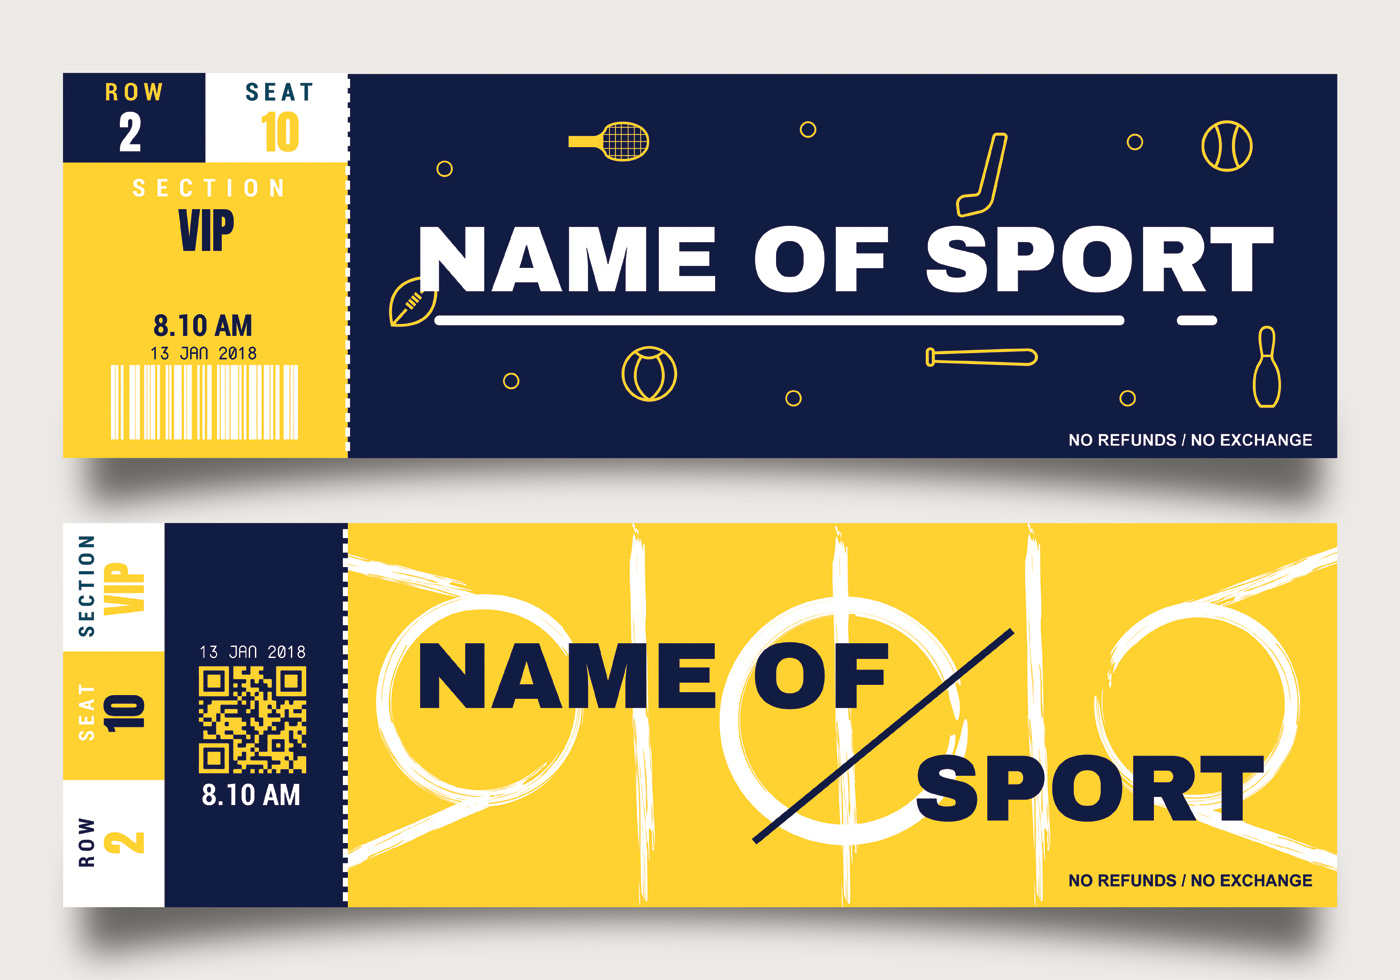 sporting event ticket template download free vector art. Black Bedroom Furniture Sets. Home Design Ideas